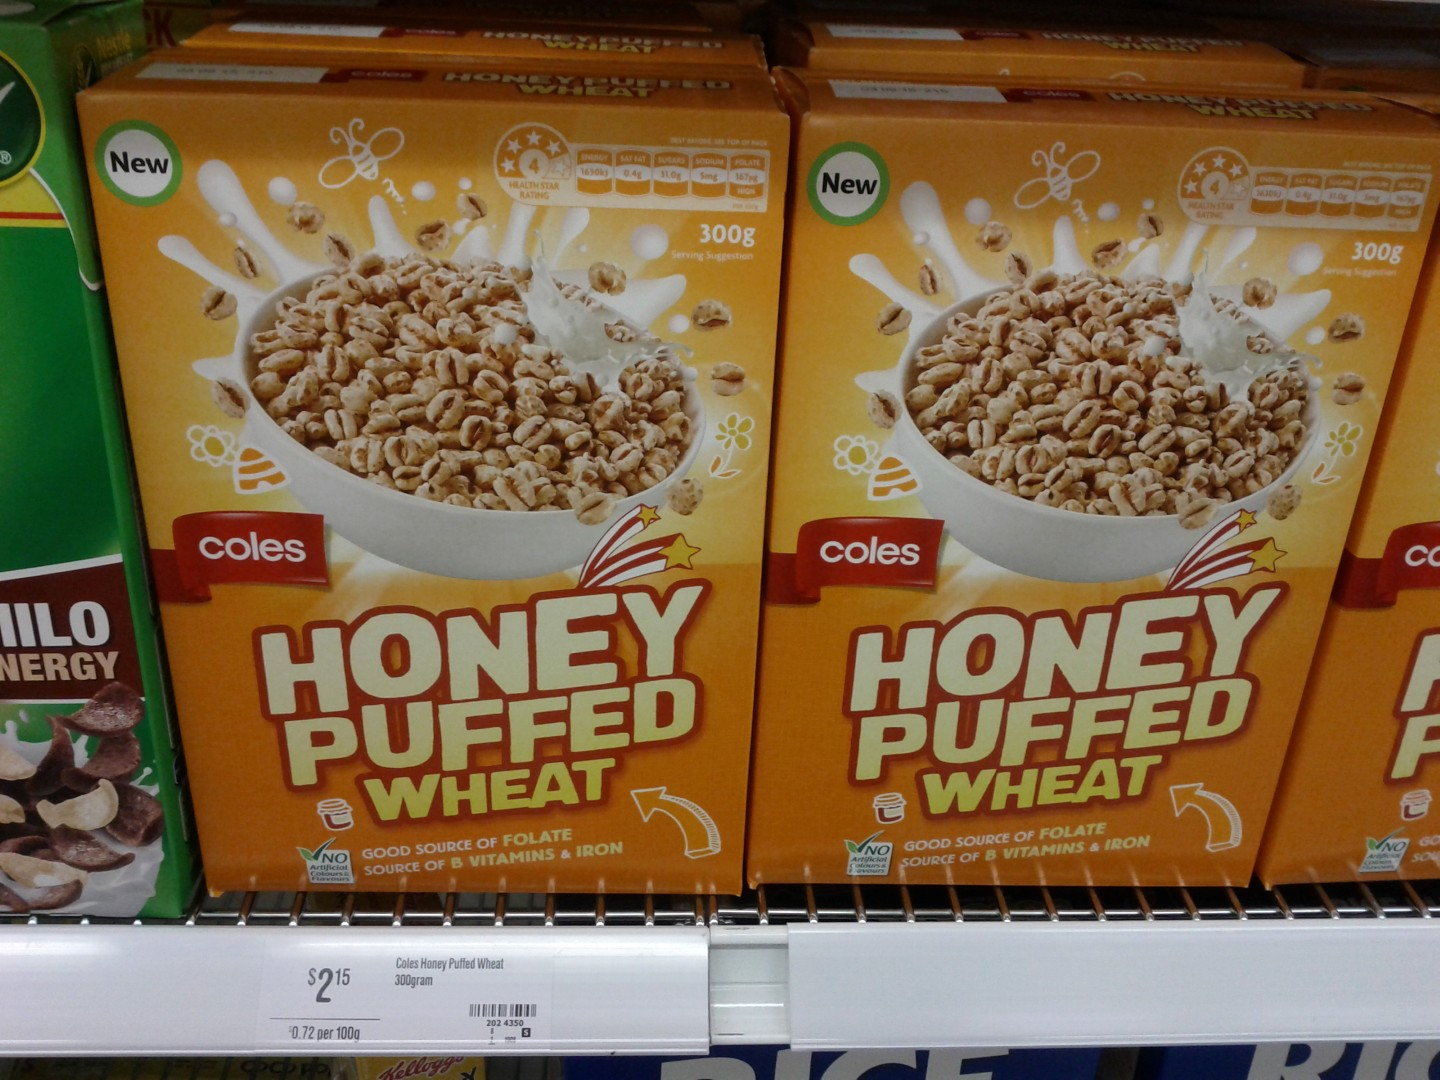 Coles 300g Honey Puffed Wheat